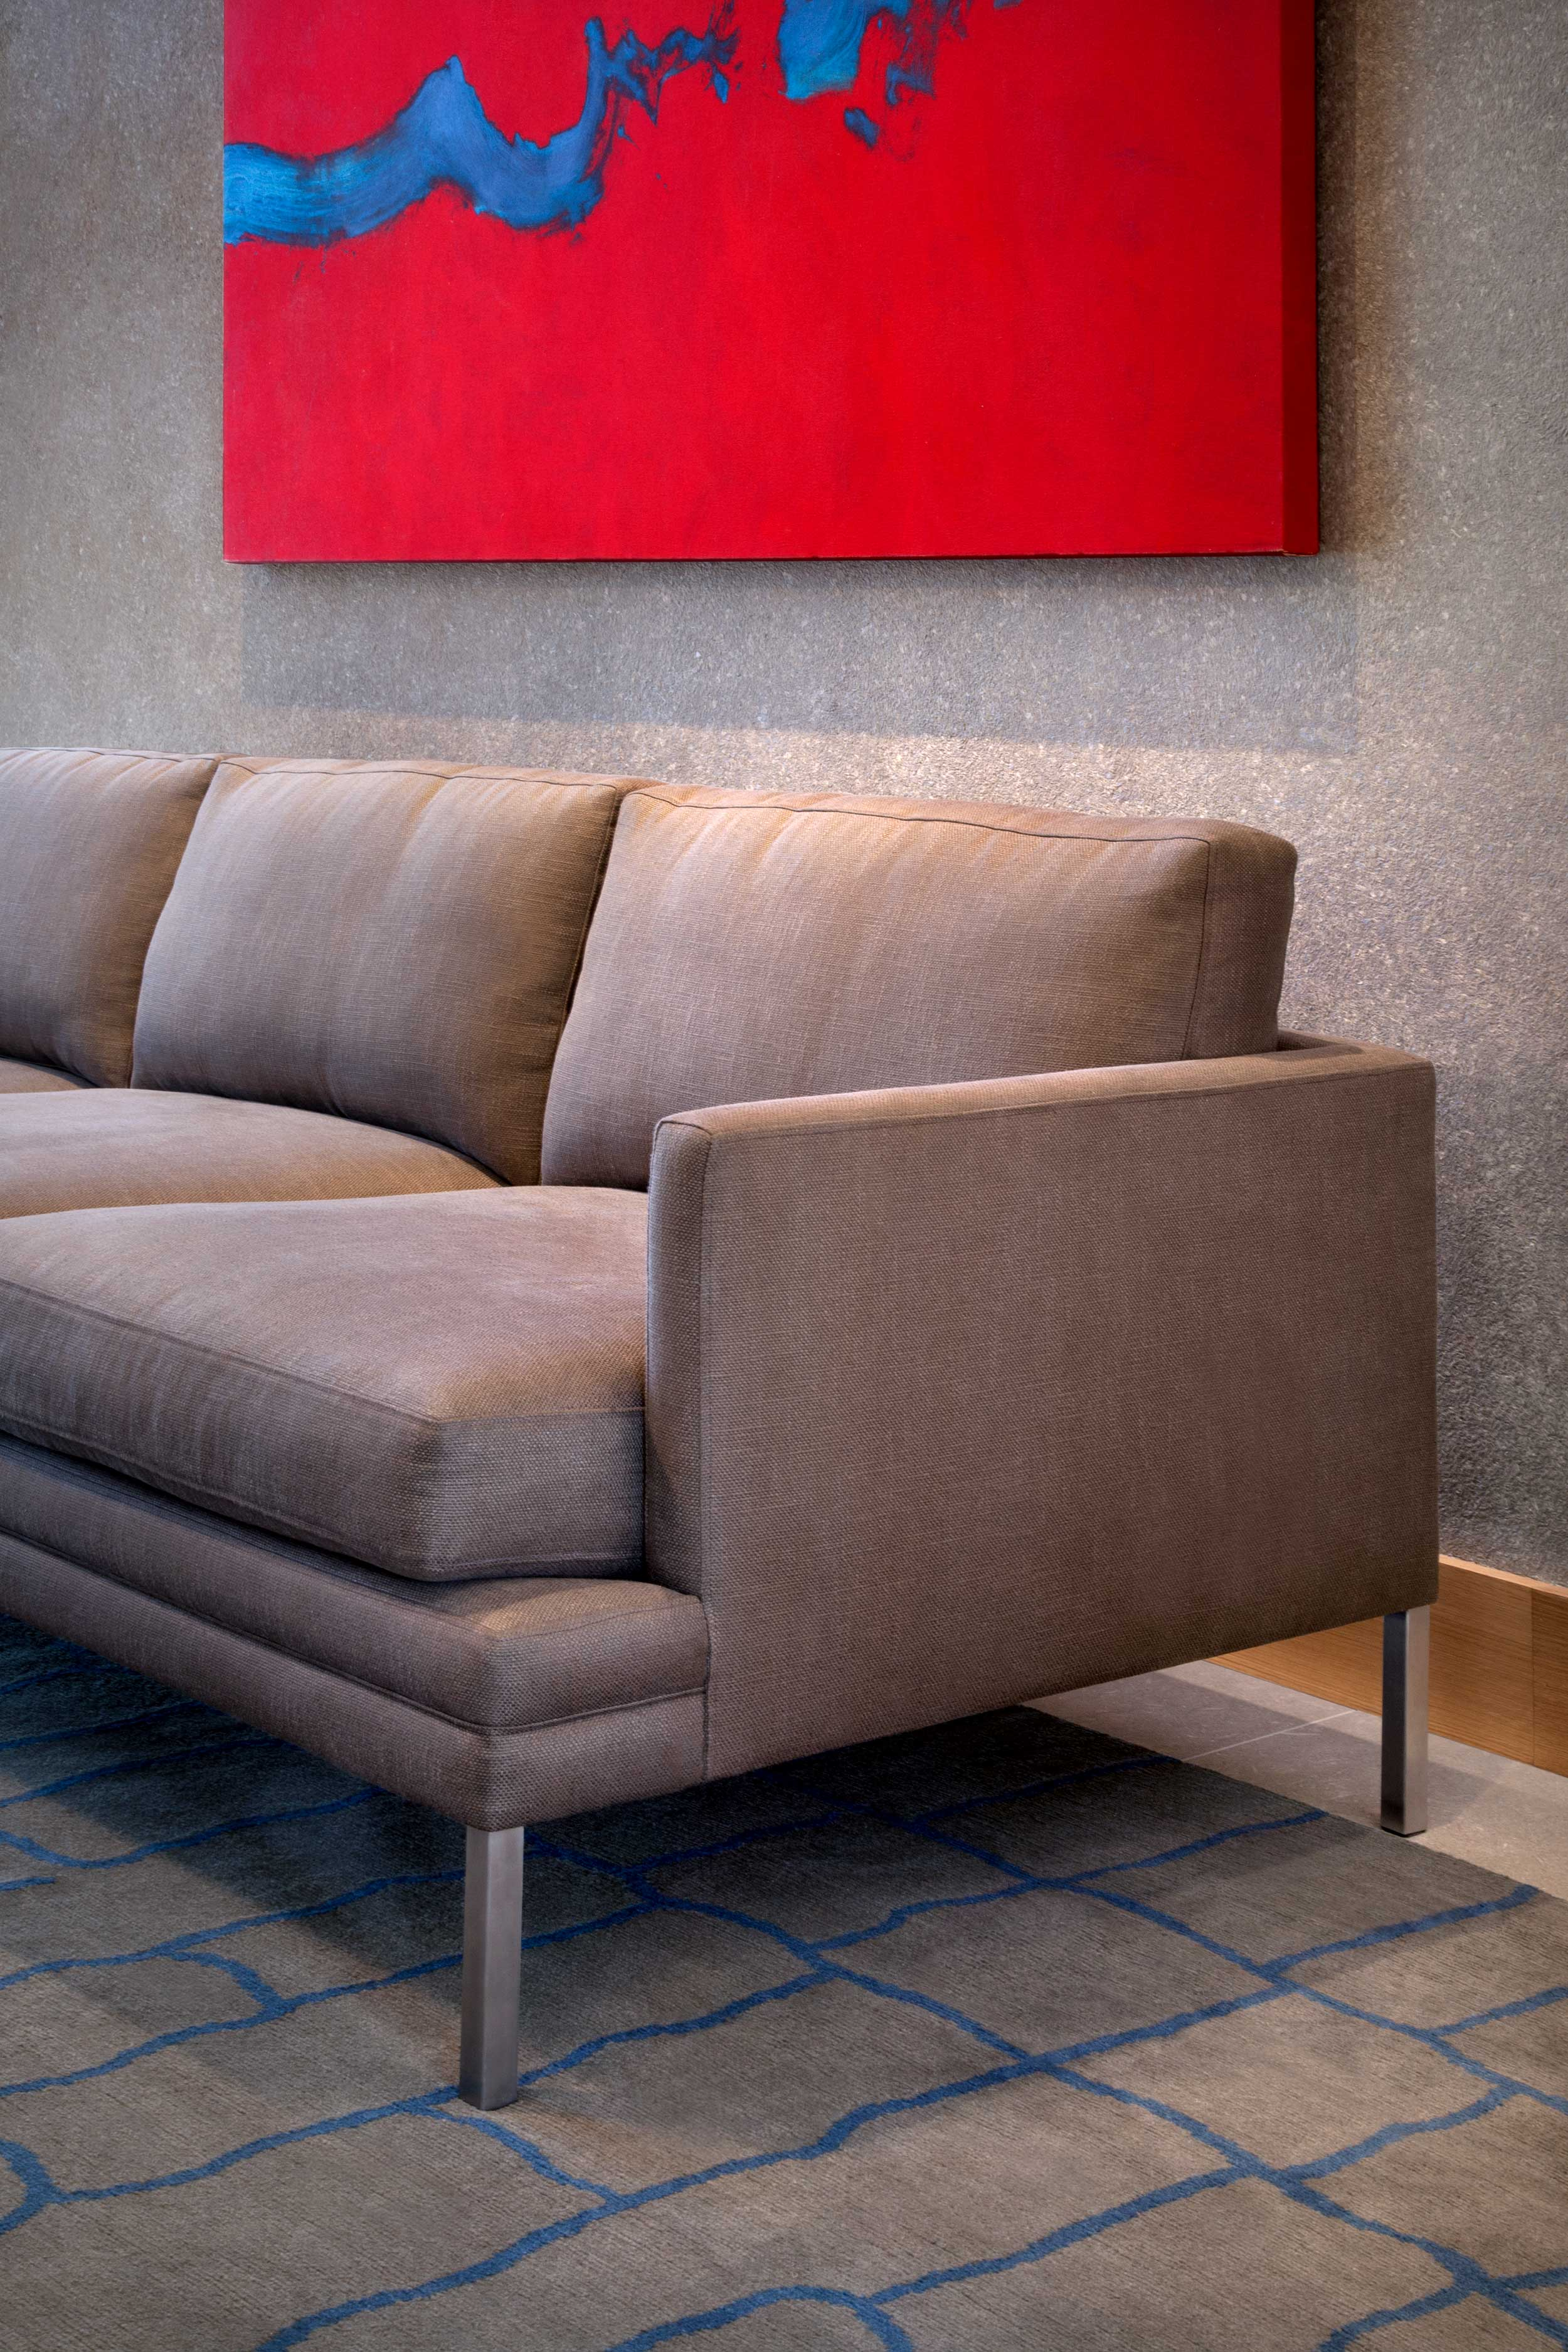 13-Living-Room-Sofa2.jpg